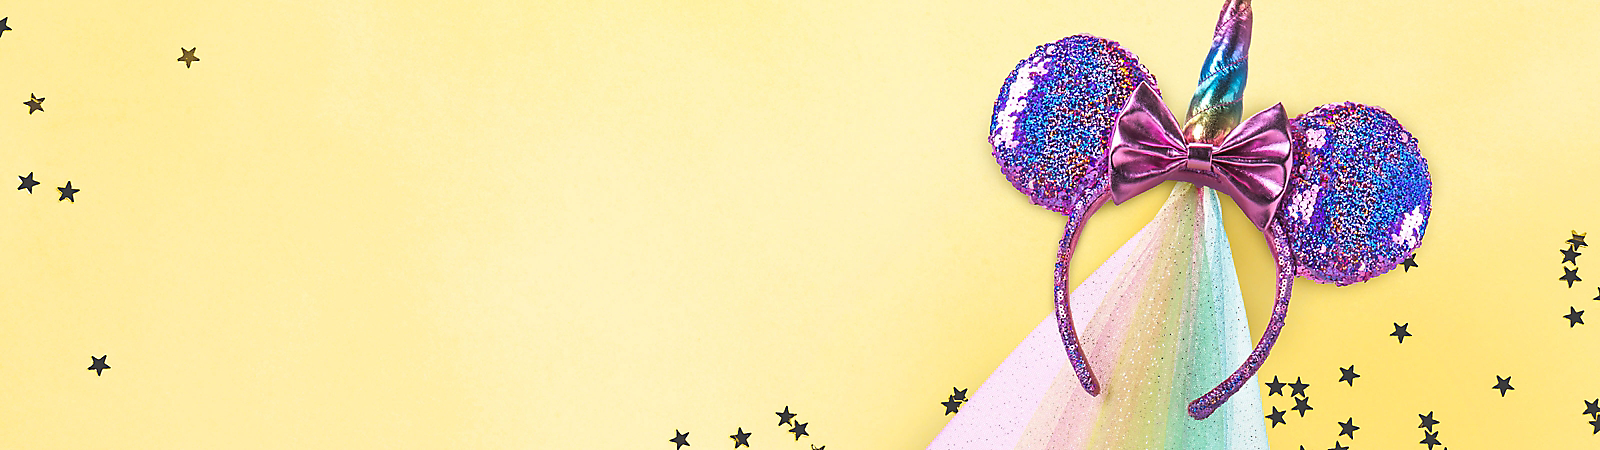 Background image of Kids' Ear Hats & Headbands